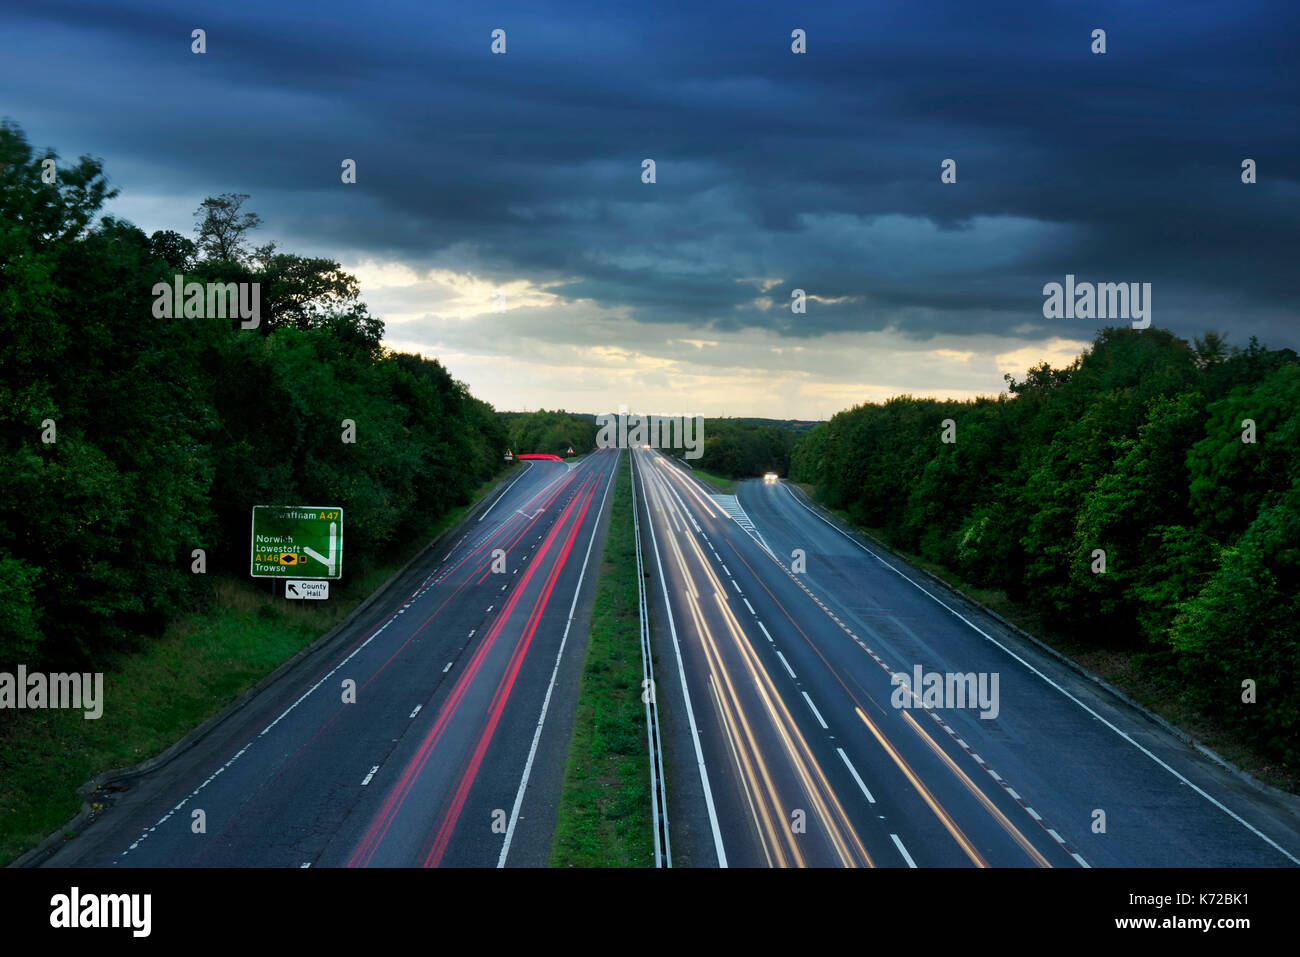 Late evening traffic on the A47 dual carriageway between Norwich and Great Yarmouth, showing the light trails from fast moving cars - Stock Image